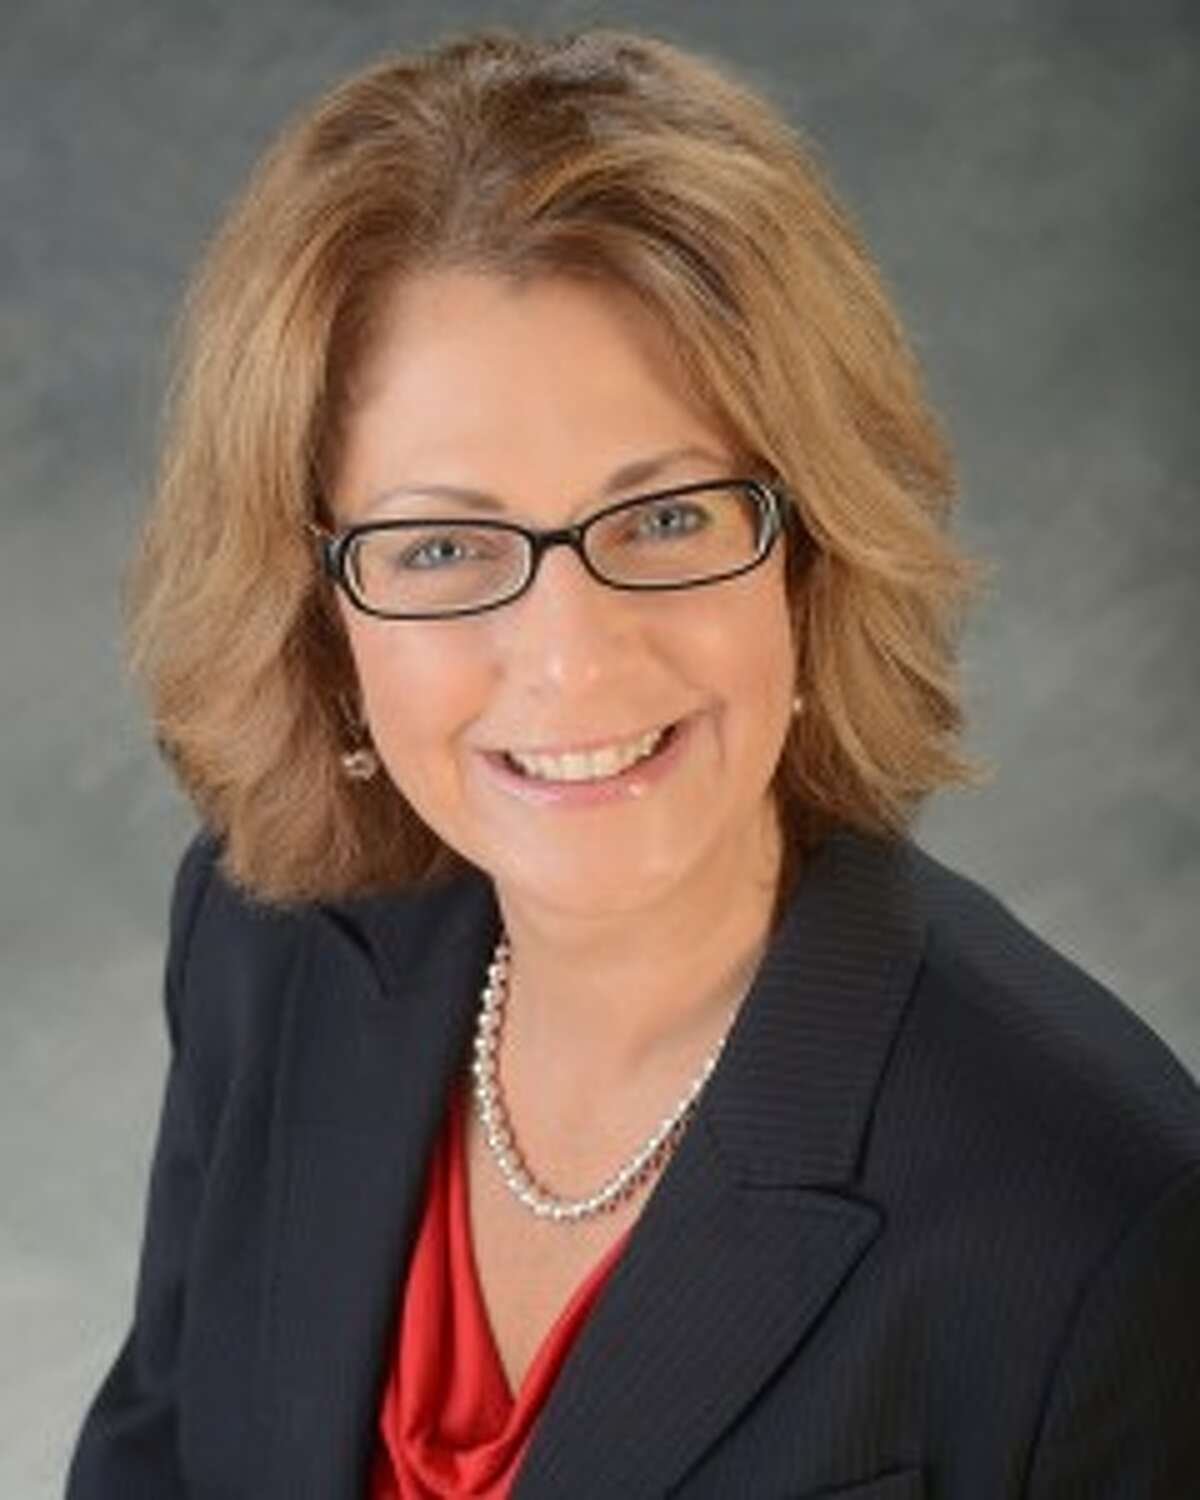 Saratoga Springs Commissioner of Finance Michele Madigan, who is in her fourth term, lost her primary bid.